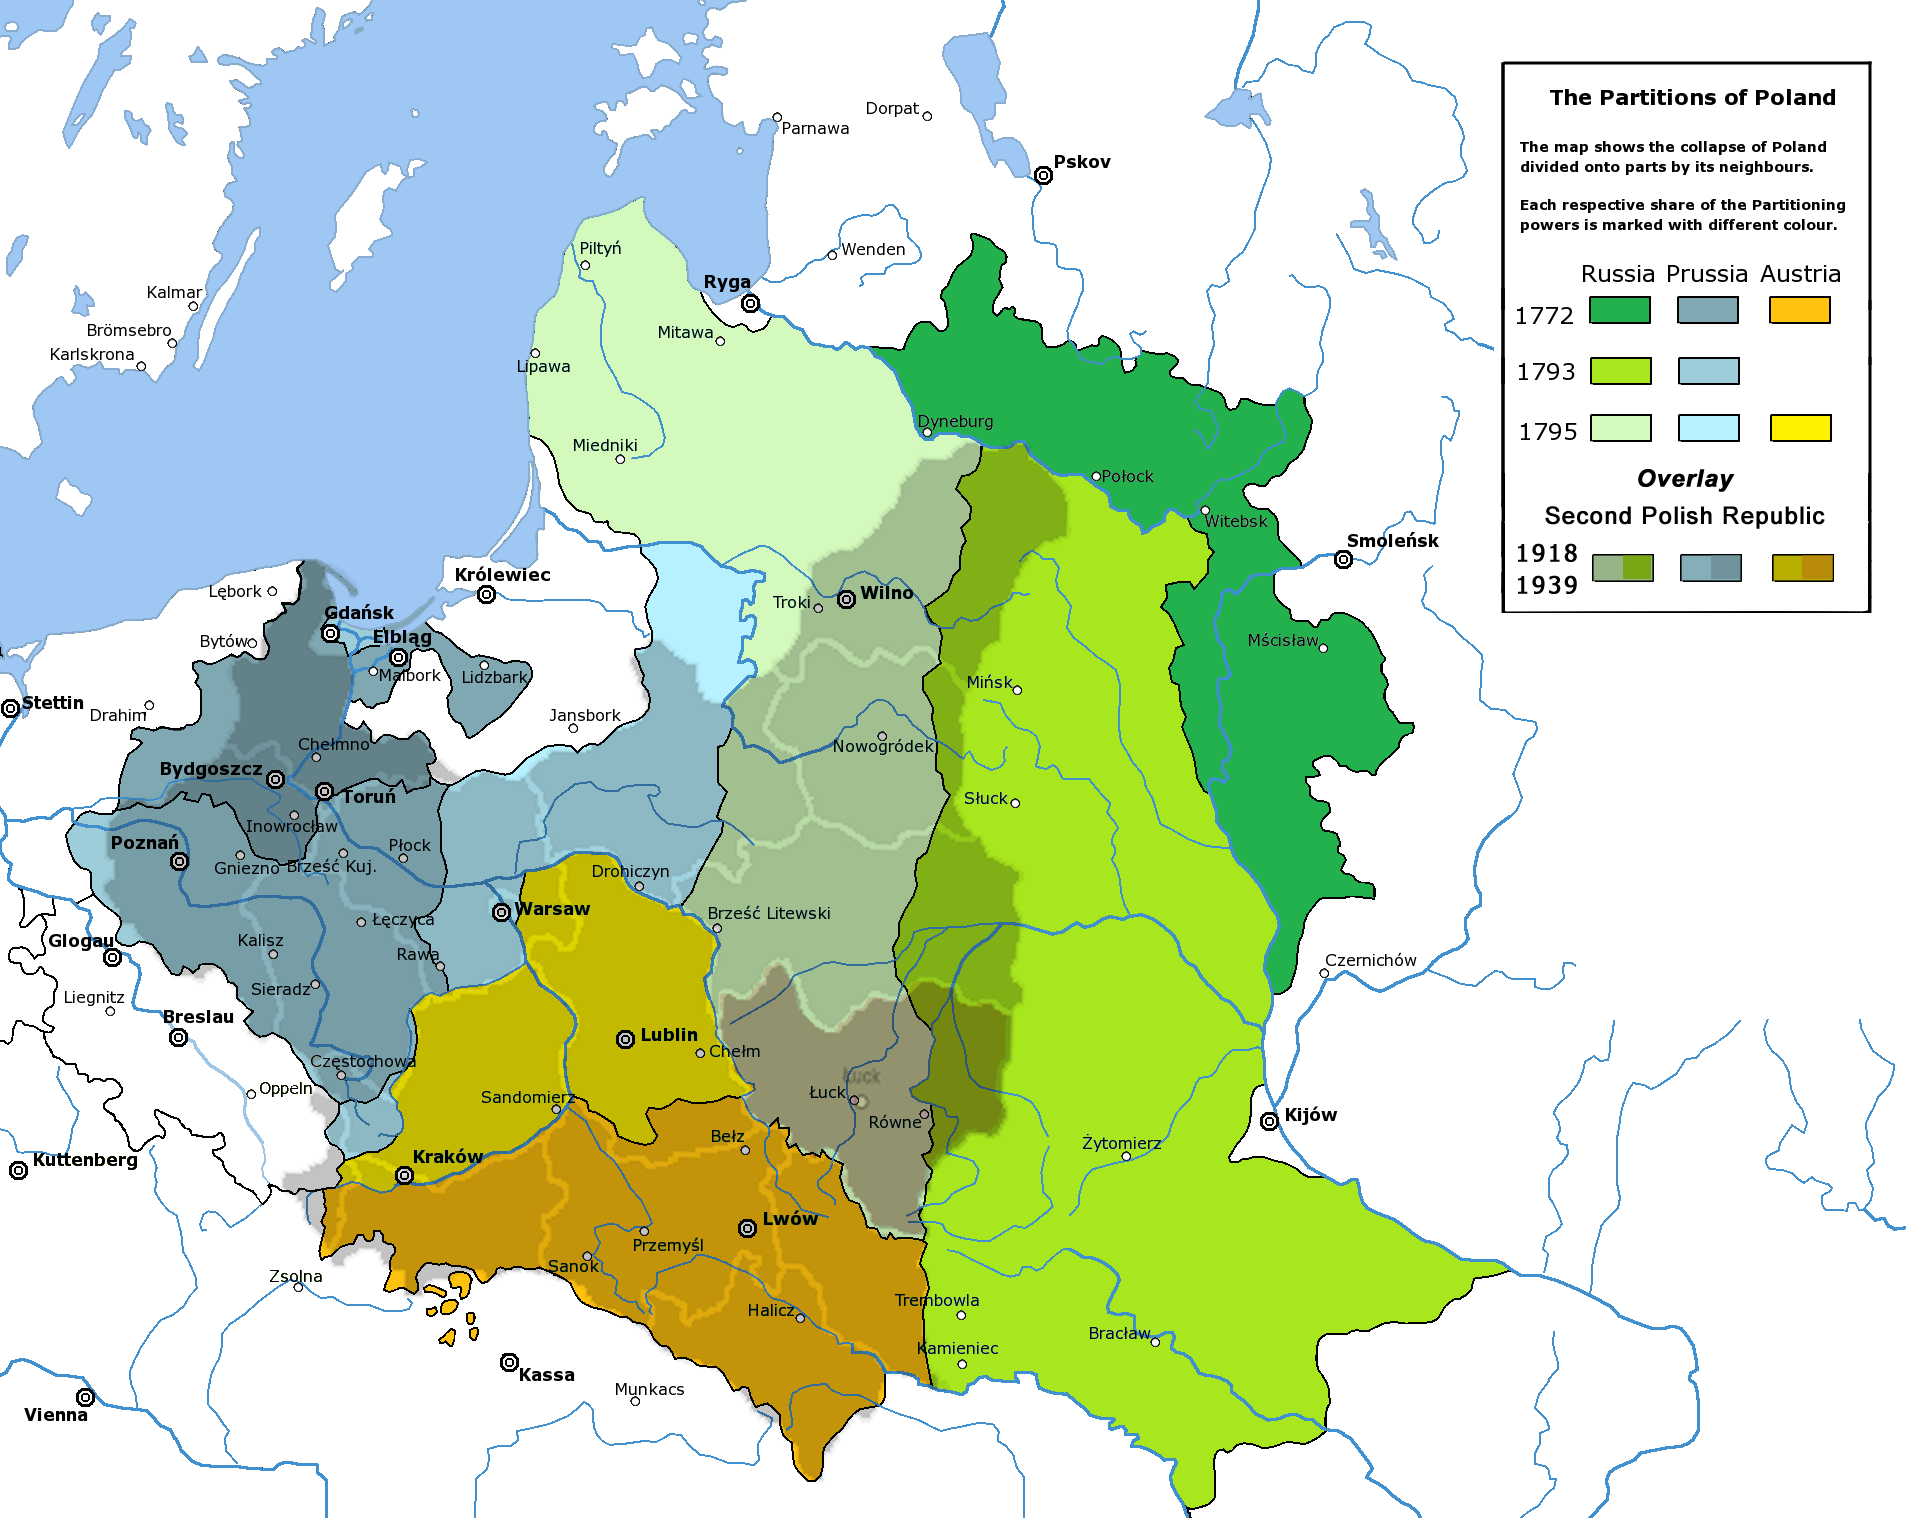 File:Partitioned Poland & the 2nd Republic (1772-1939).png